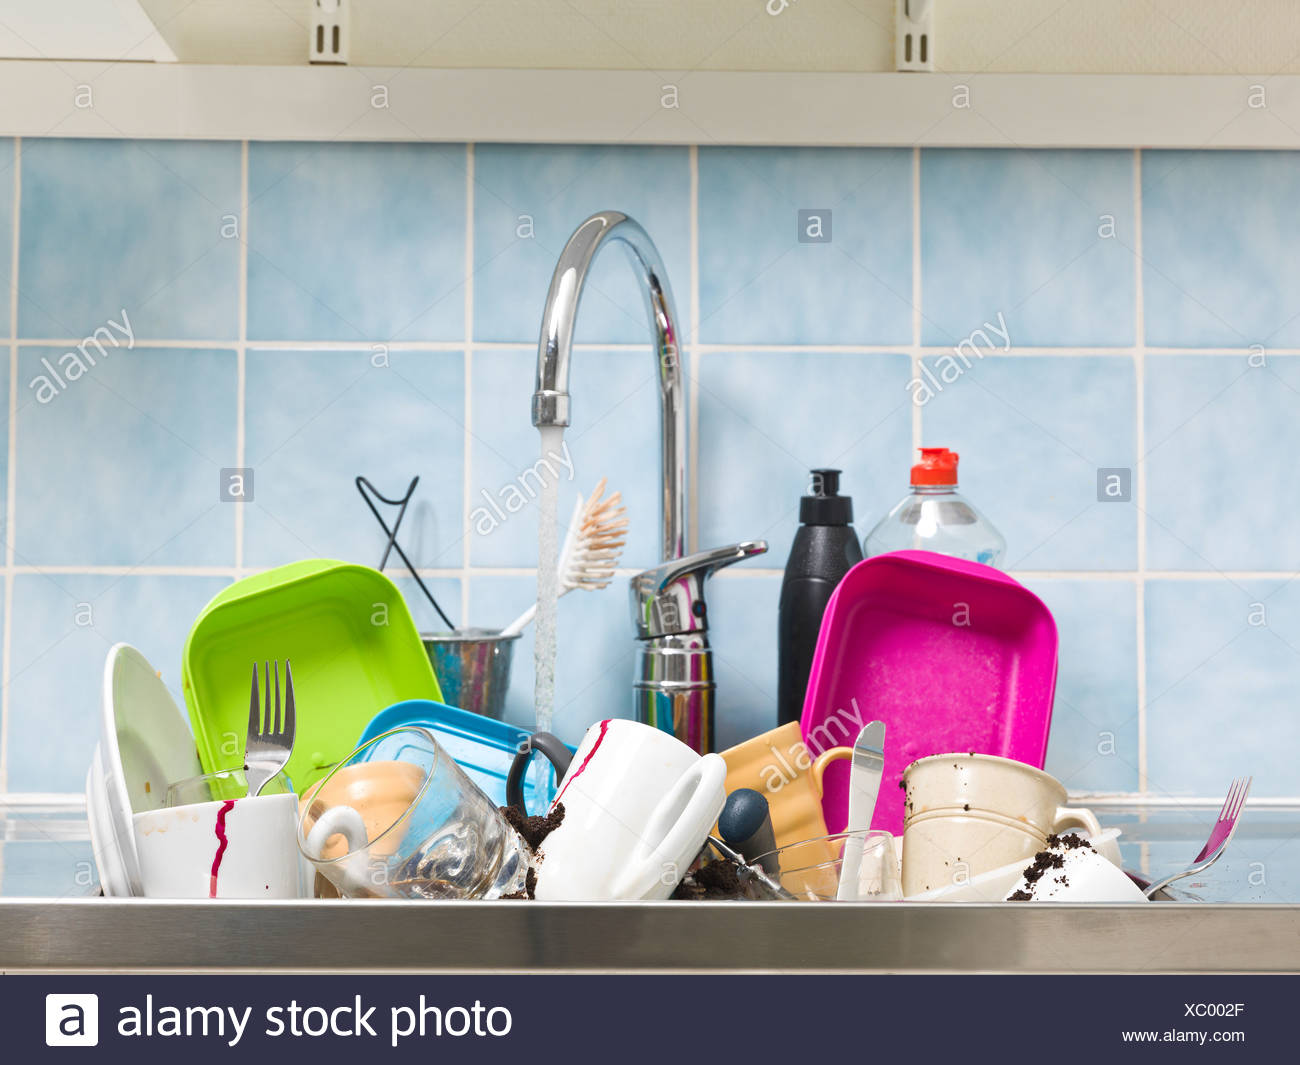 Unhygienic Kitchen Stock Photos & Unhygienic Kitchen Stock Images ...